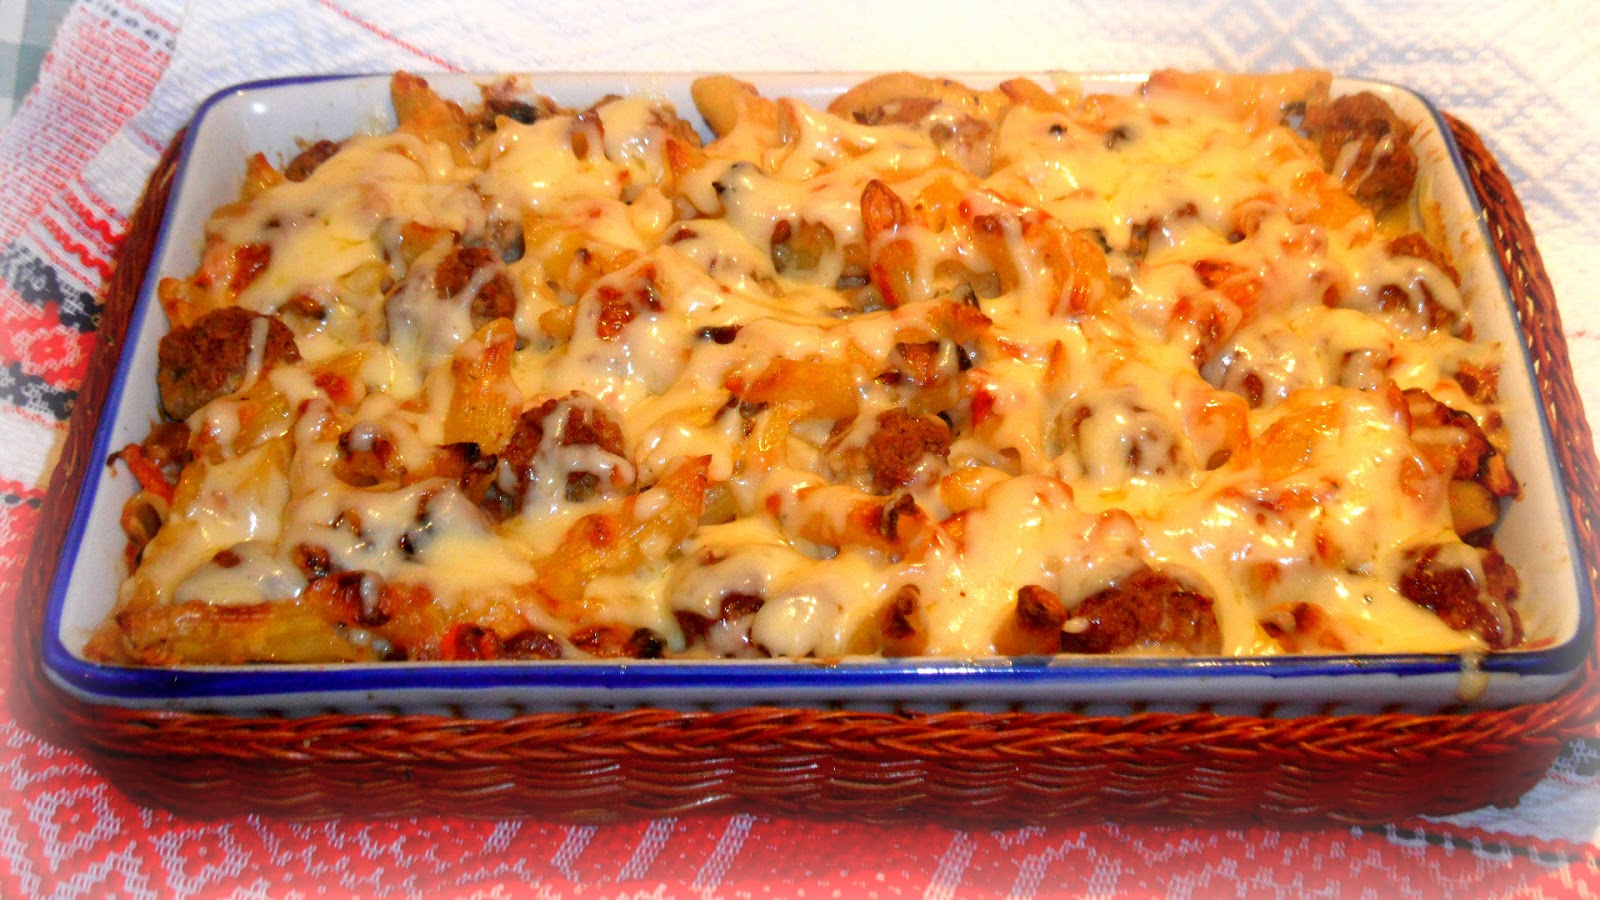 ... Capsule Cupboard: Pasta bake with Campbell's Cream of Mushroom soup